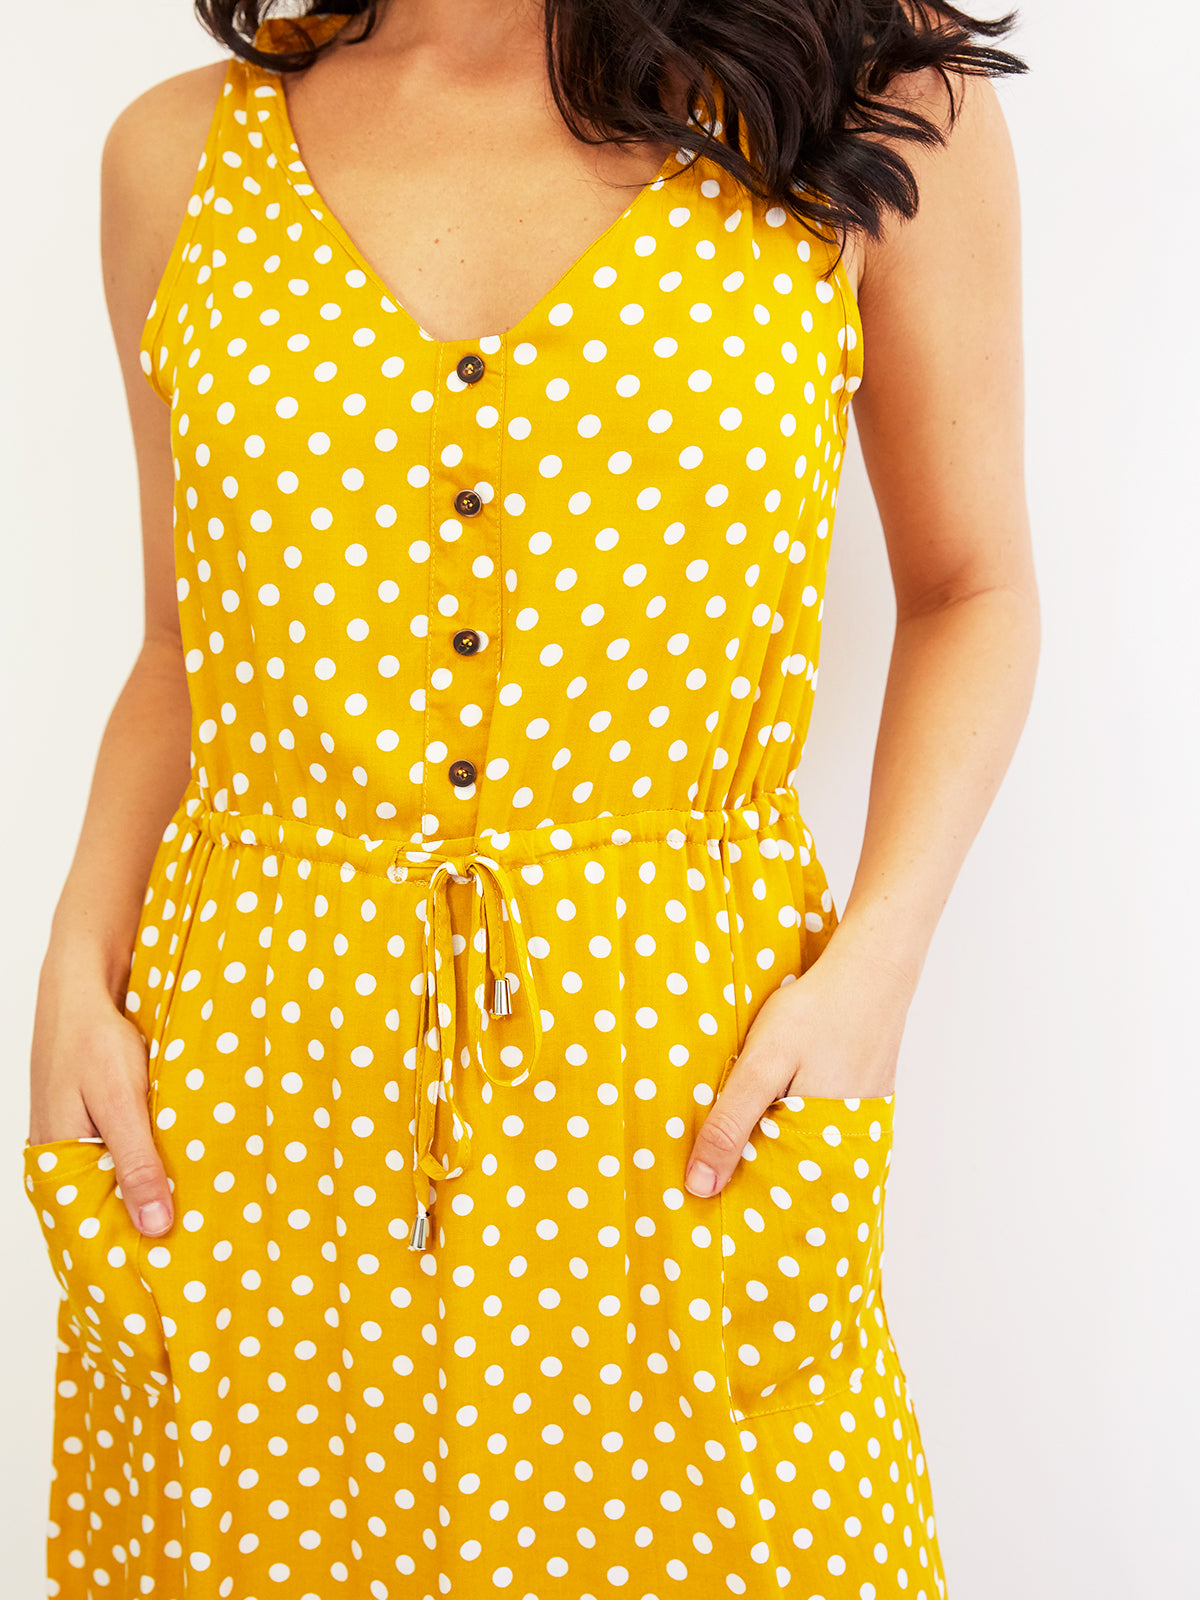 SAINT HONORE DREAMING MUSTARD POLKA DOT DRESS